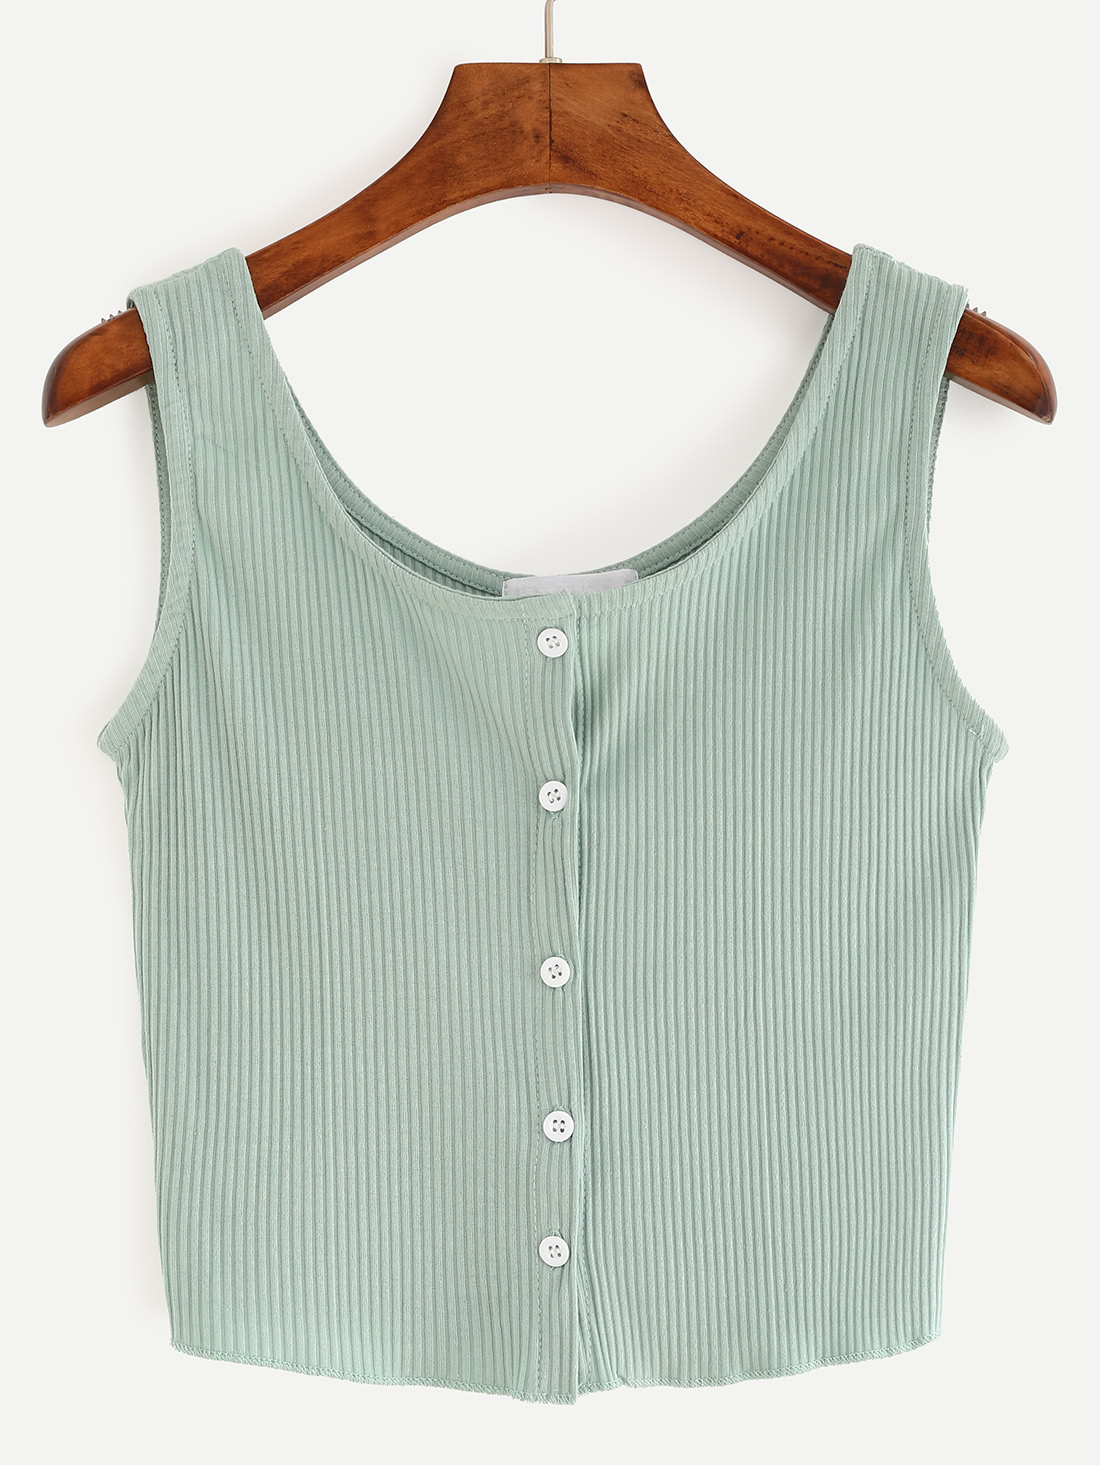 Buttoned Front Ribbed Knit Crop Tank Top - Green vest160524076